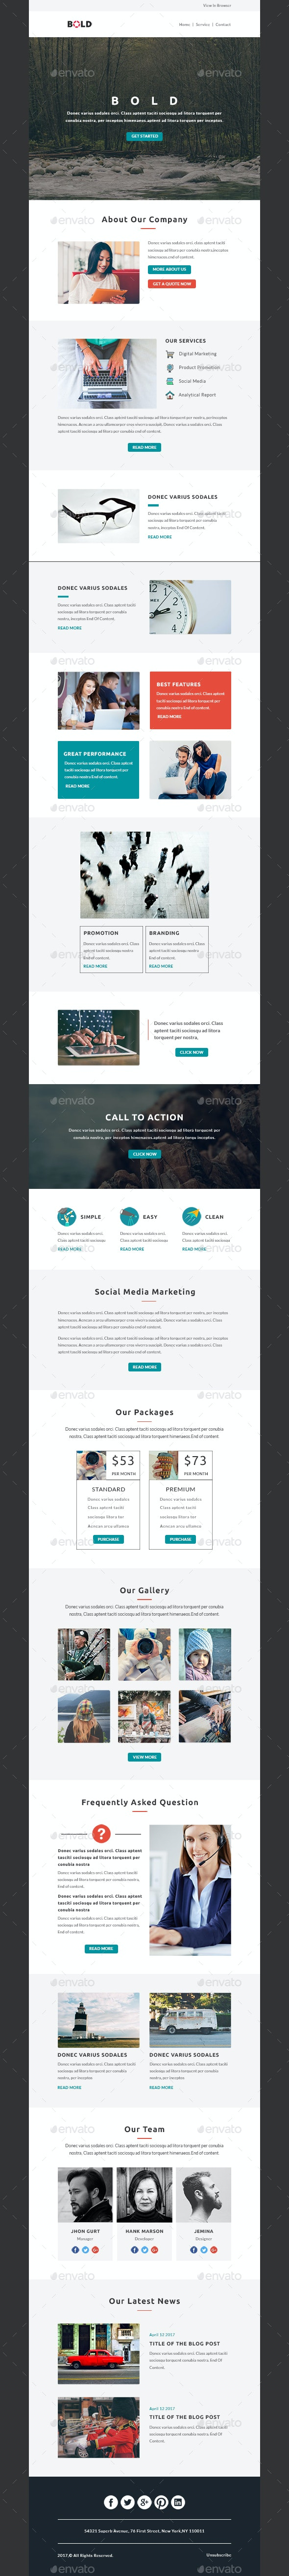 BOLD - Multipurpose Email PSD Template